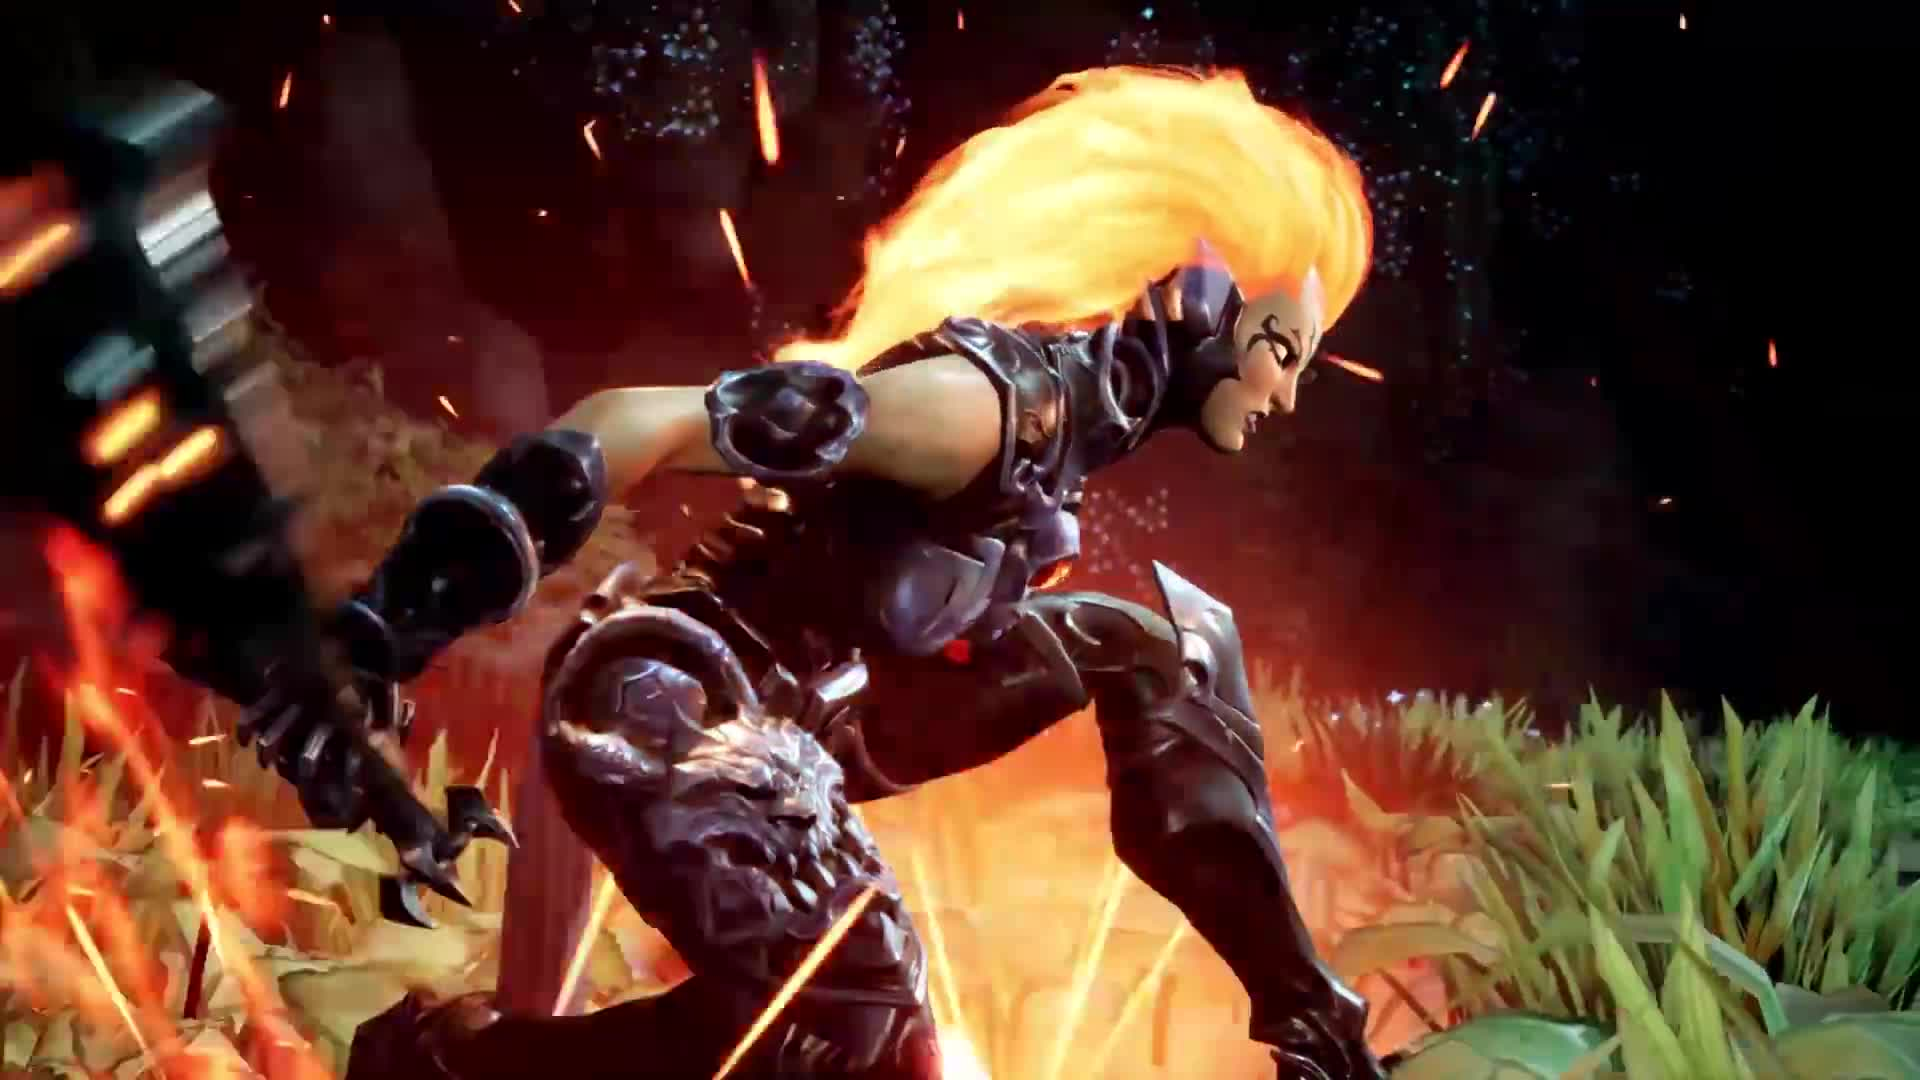 Darksiders 3 - Flame hollow trailer